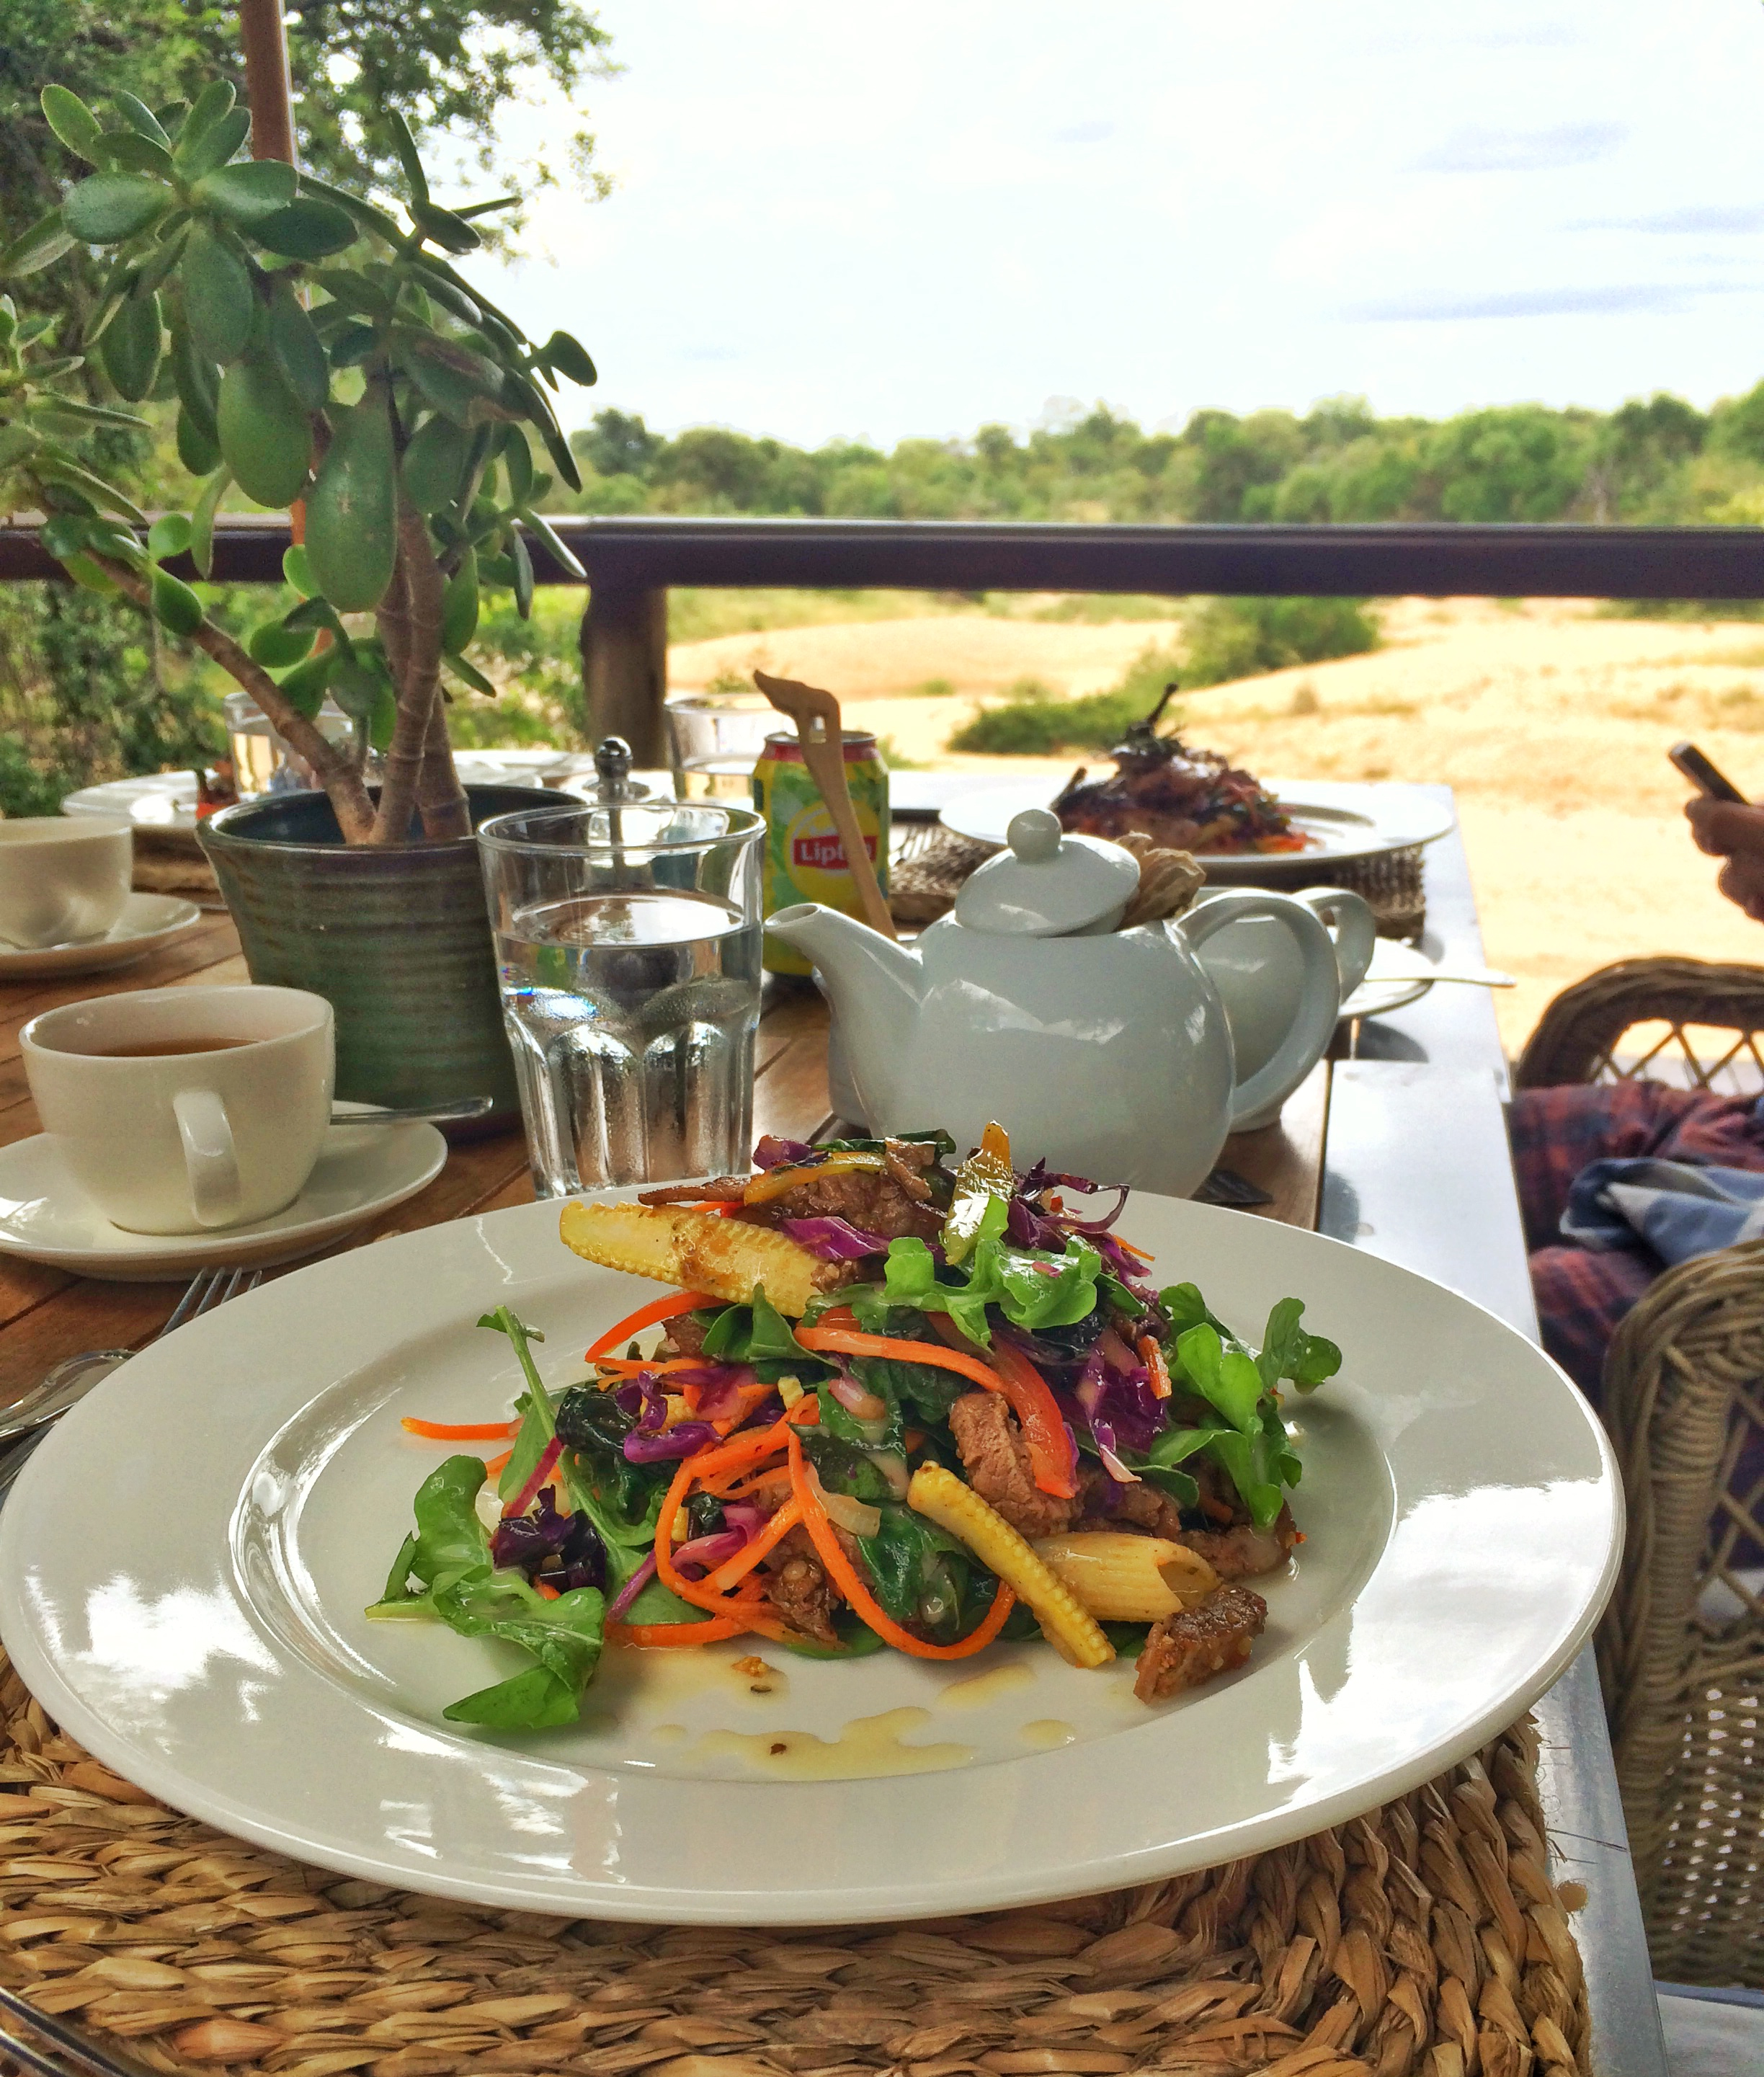 One of the many delicious meals enjoyed at Thornybush.